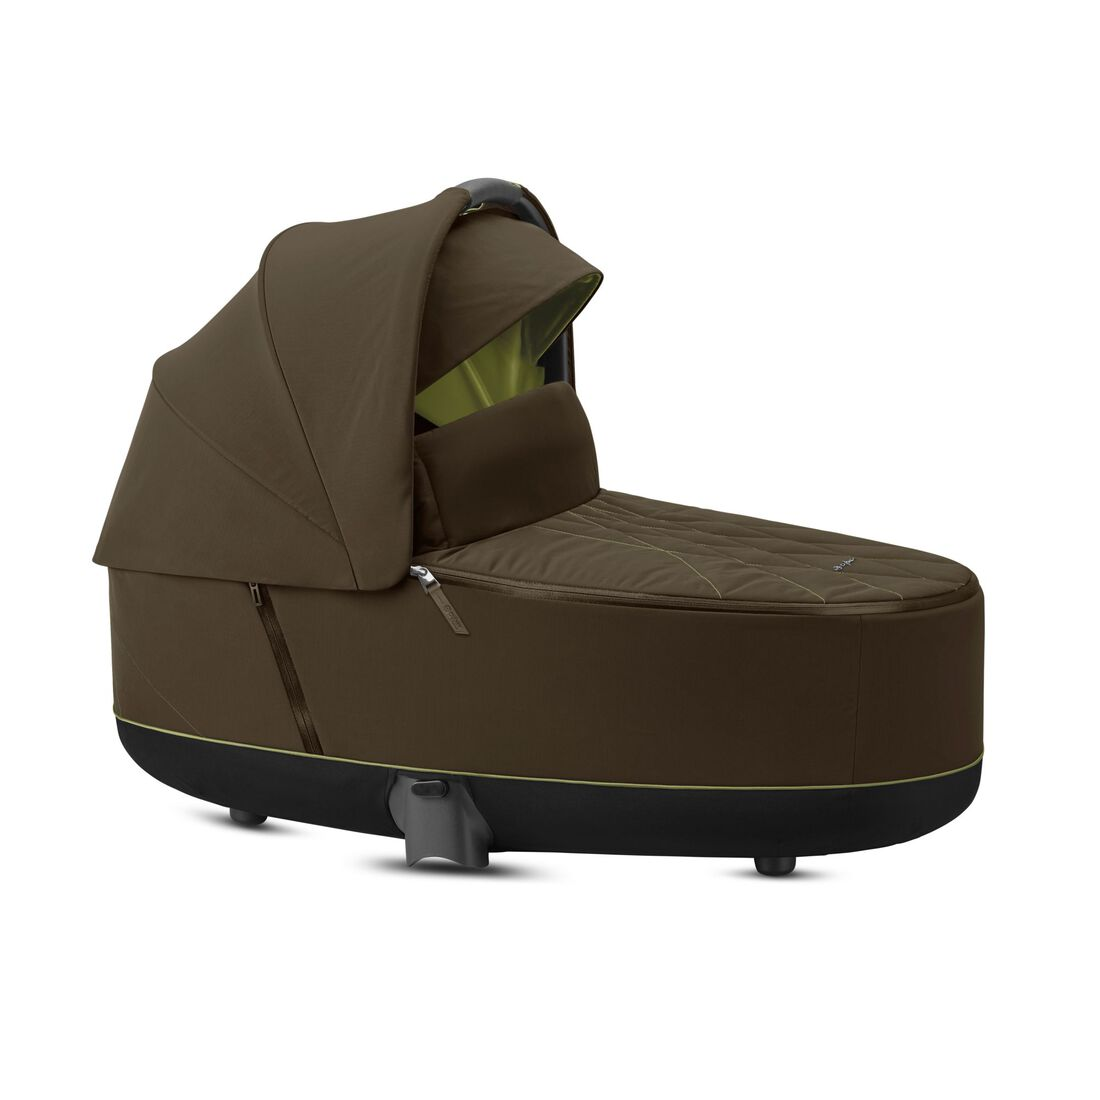 CYBEX Priam Lux Carry Cot - Khaki Green in Khaki Green large image number 2